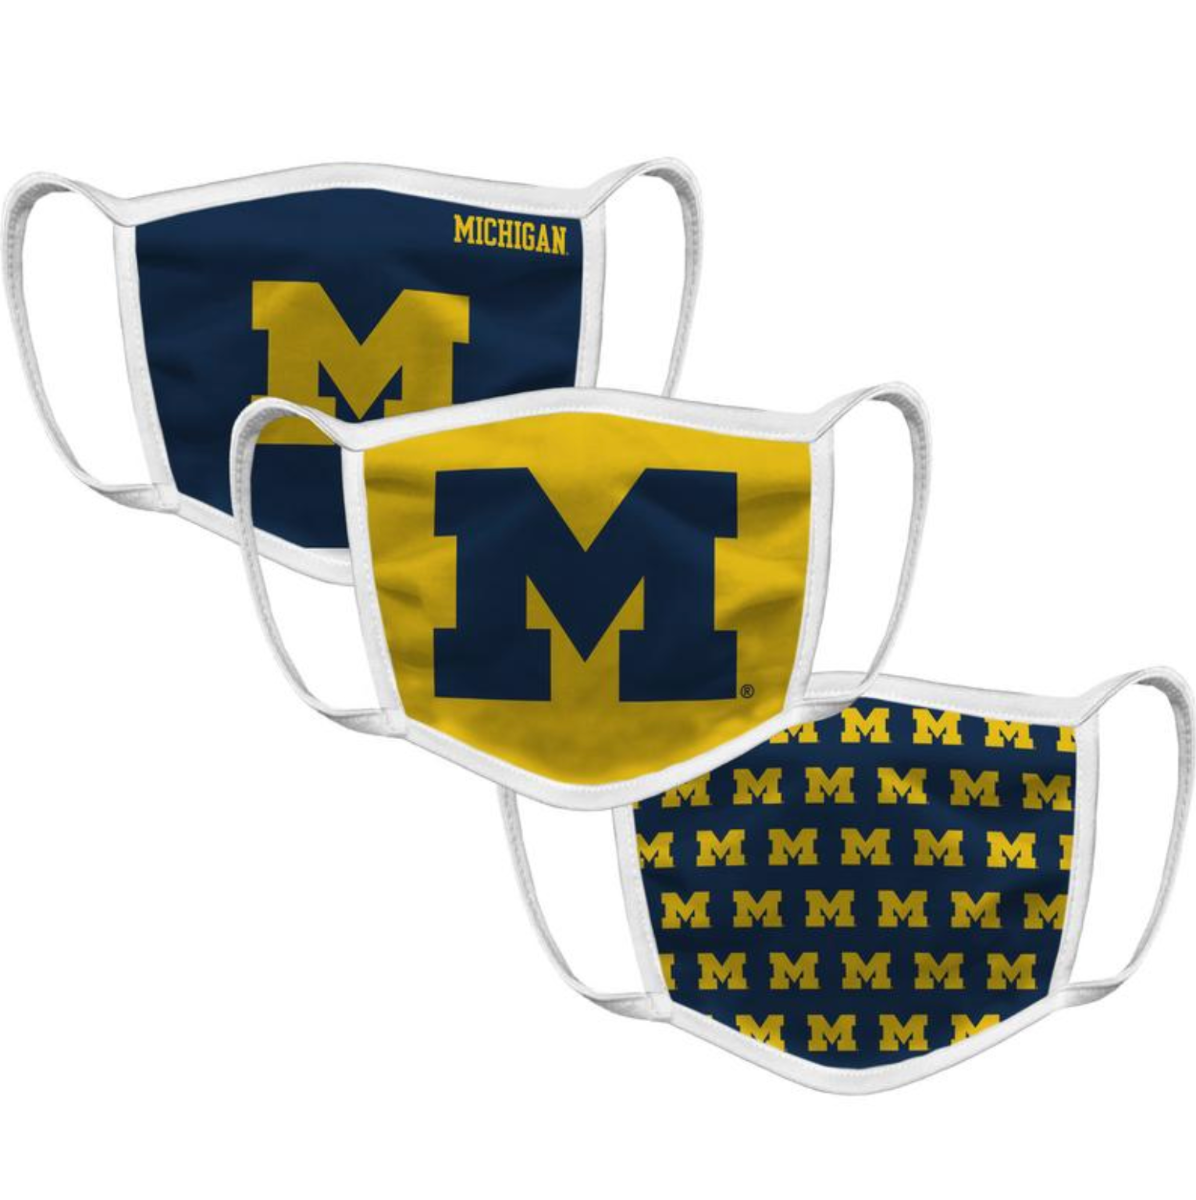 Michigan Face Mask (3 Pack)